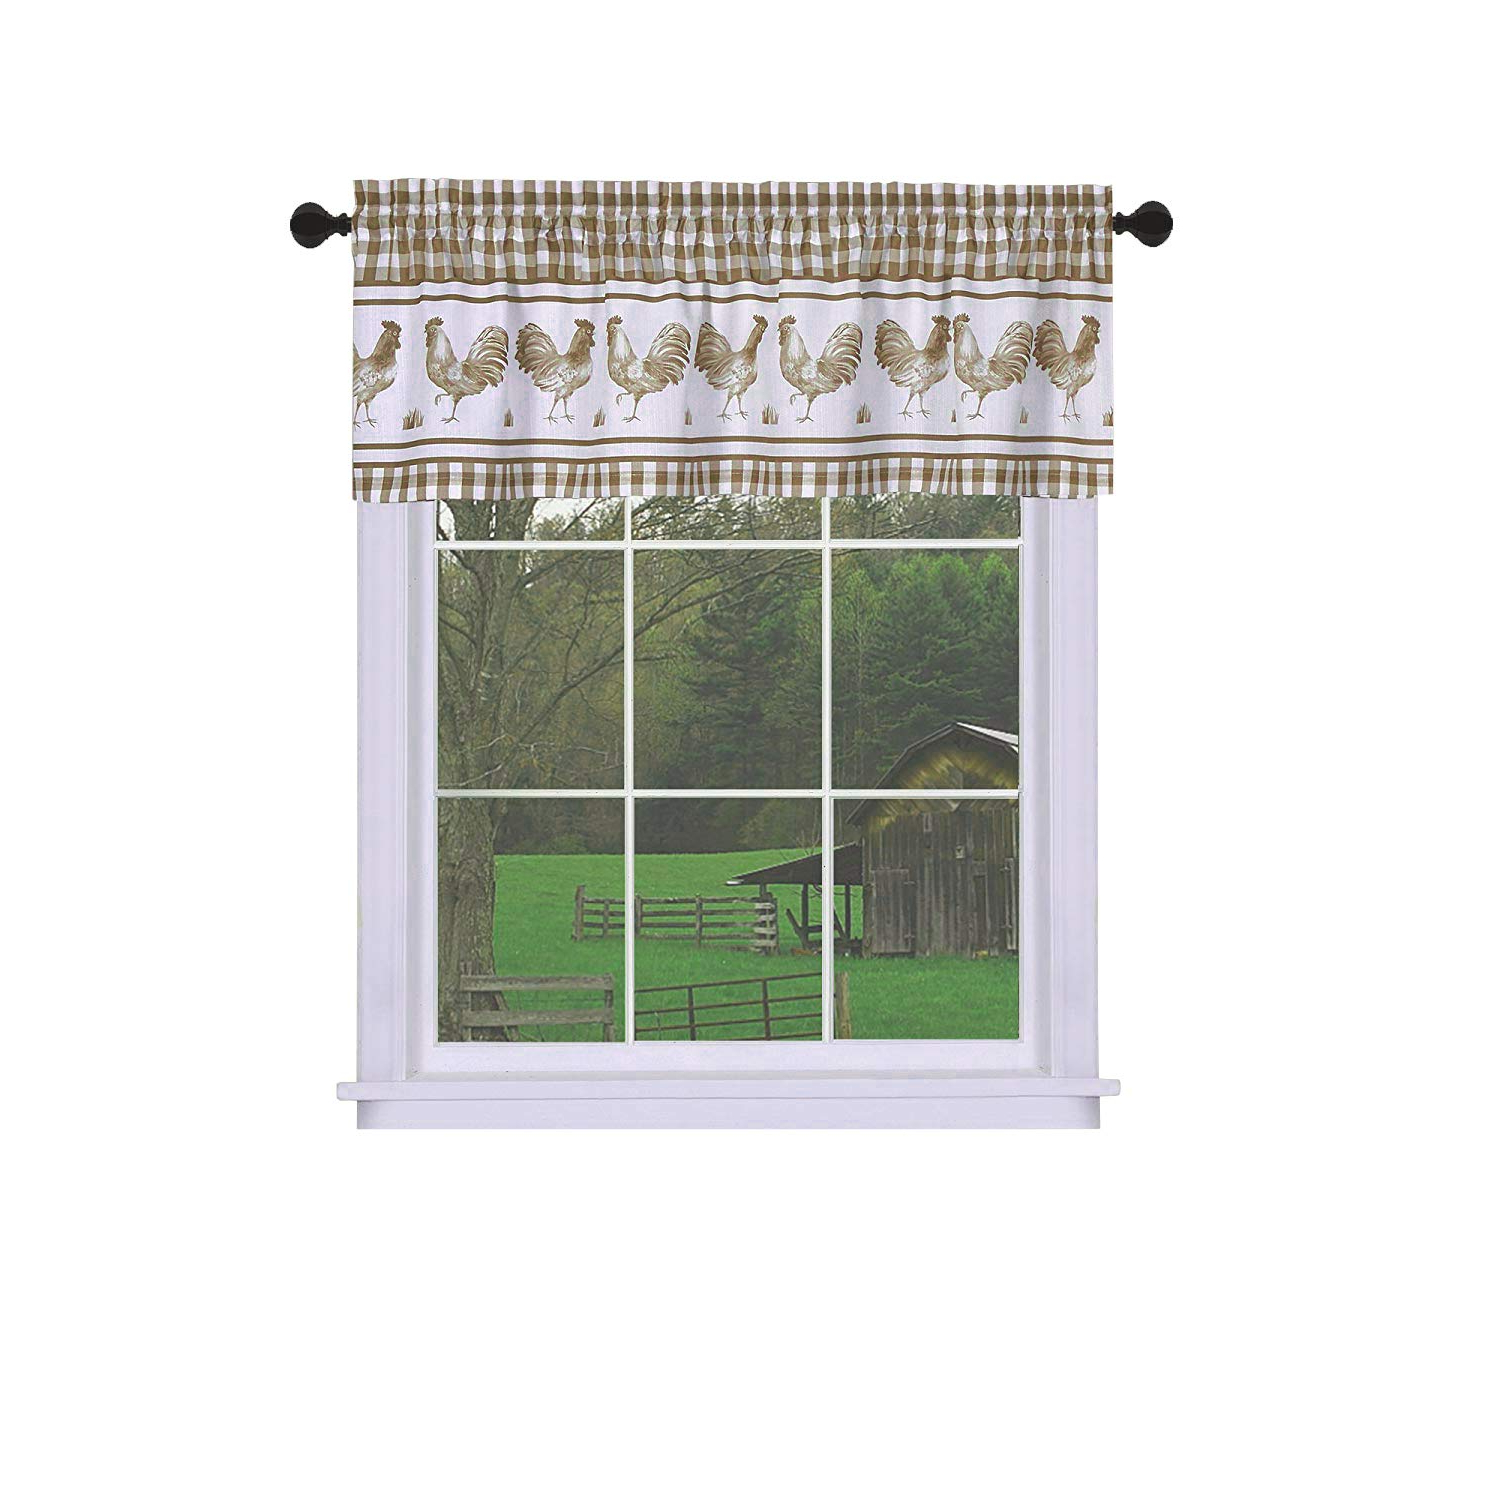 Famous Goodgram Plaid Rooster Window Curtain Valance – Assorted Colors (navy) In Barnyard Buffalo Check Rooster Window Valances (View 8 of 20)